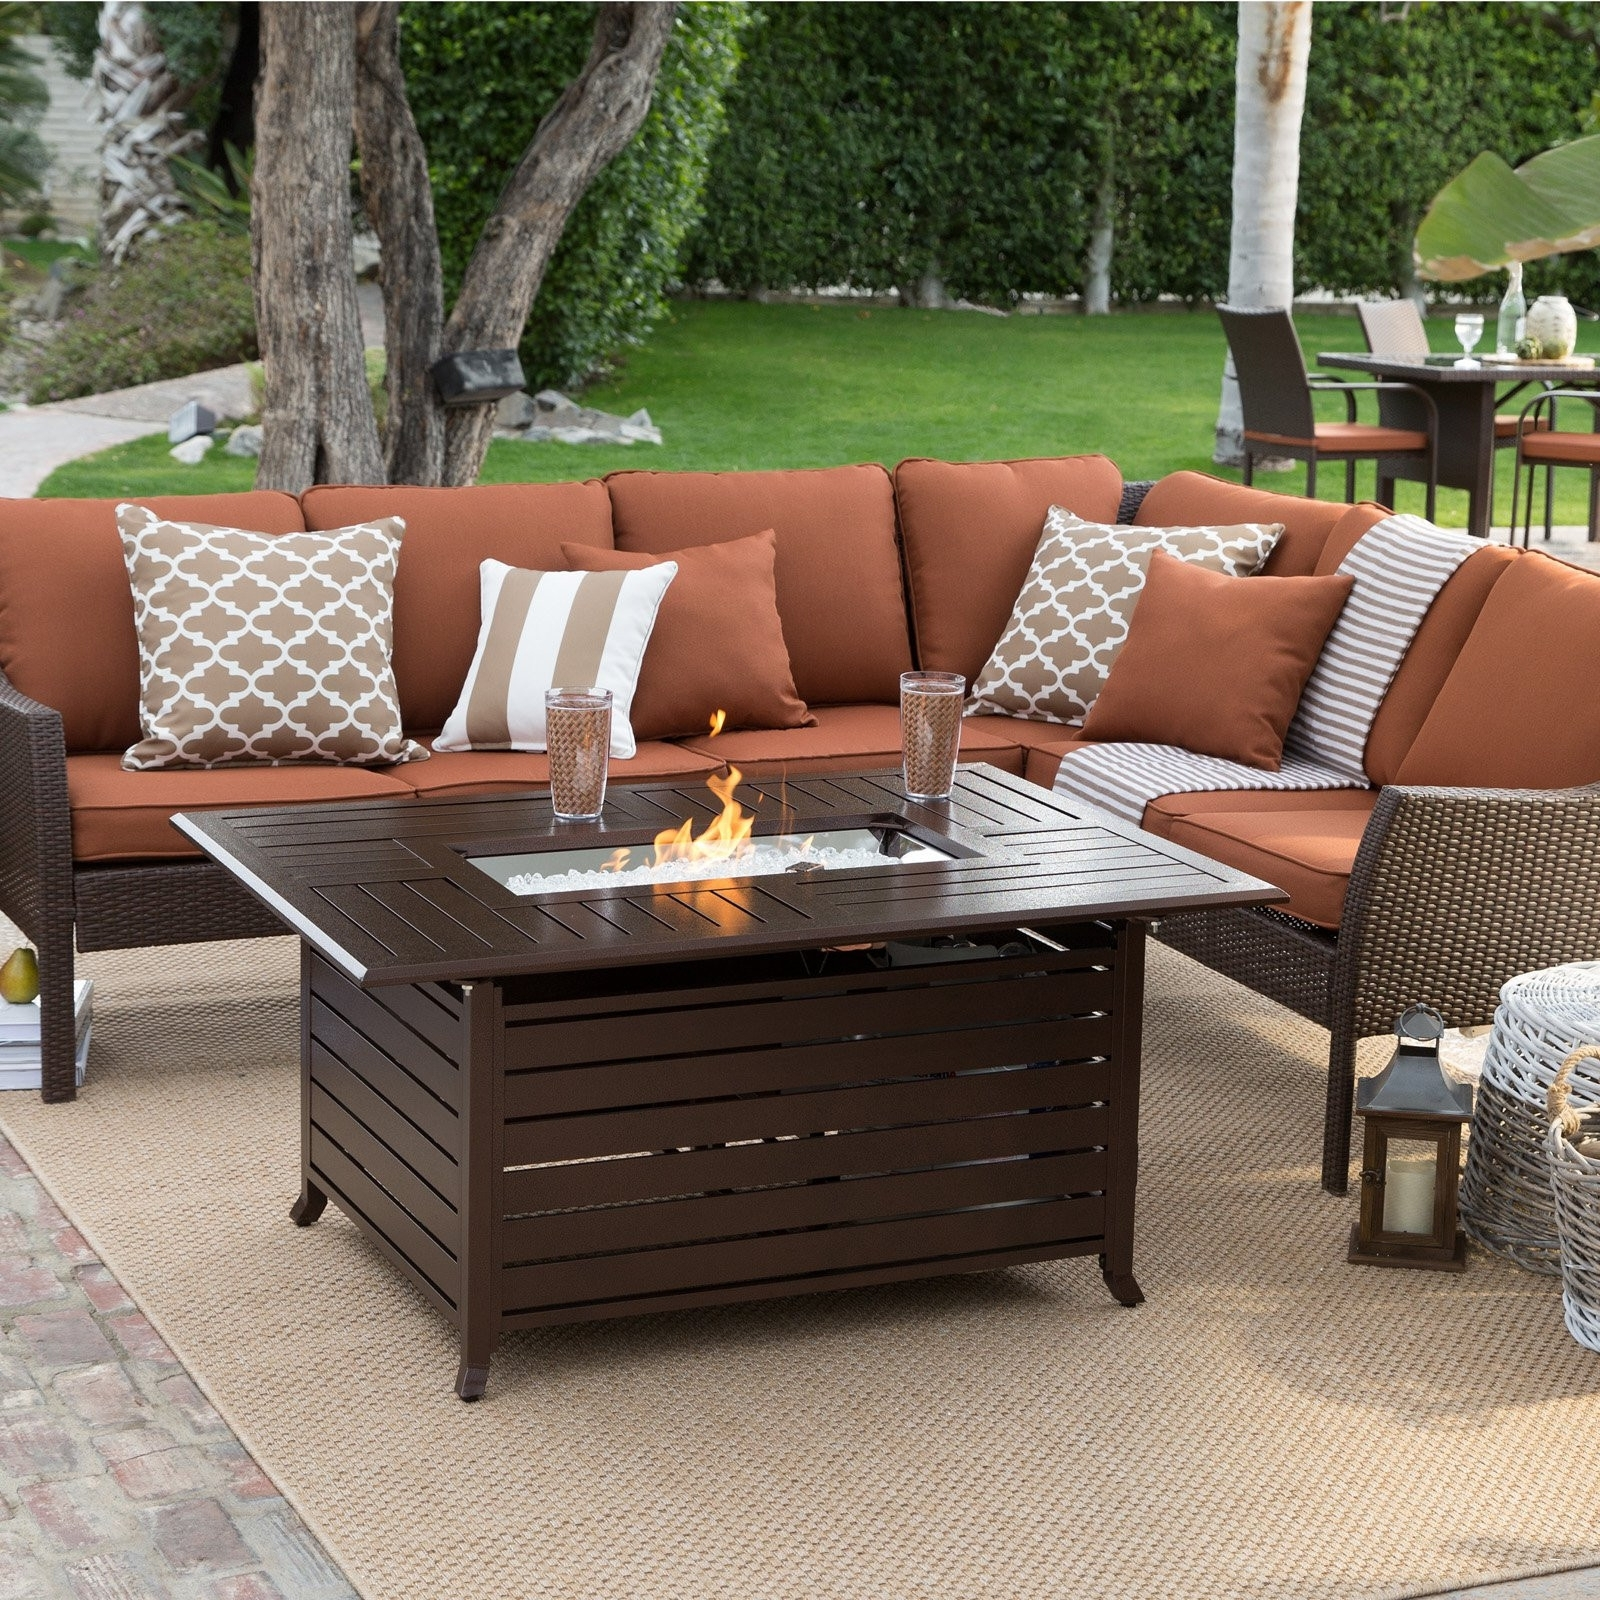 2017 Patio Furniture Conversation Sets With Fire Pit Inside Patio Conversation Sets With Fire Pit Great Wicker Conversation (View 1 of 15)